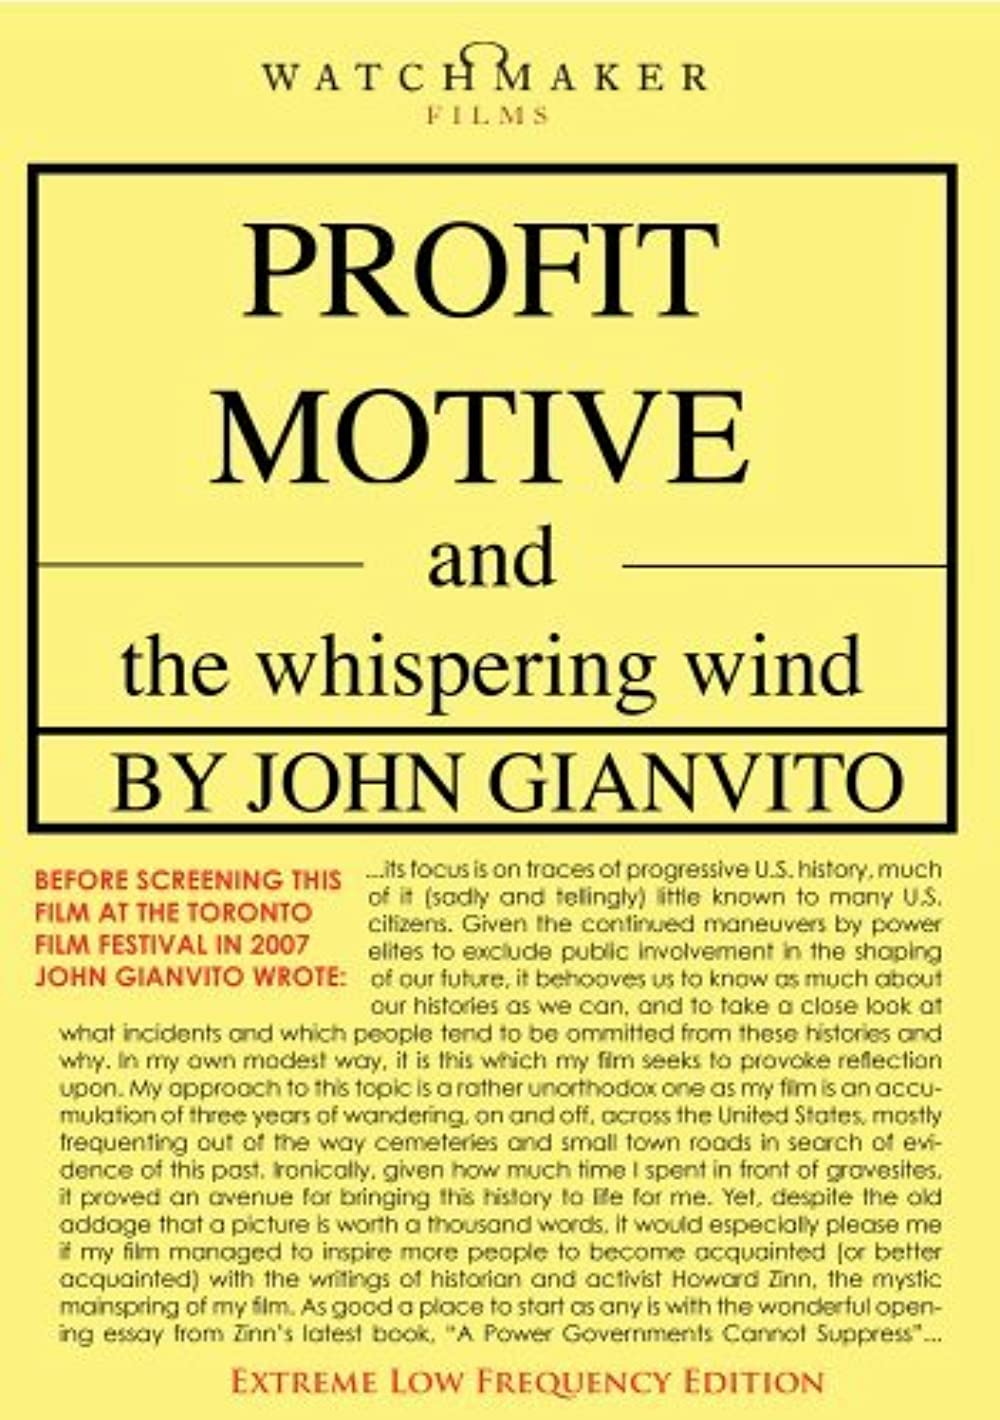 Poster for Profit Motive and the Whispering Wind